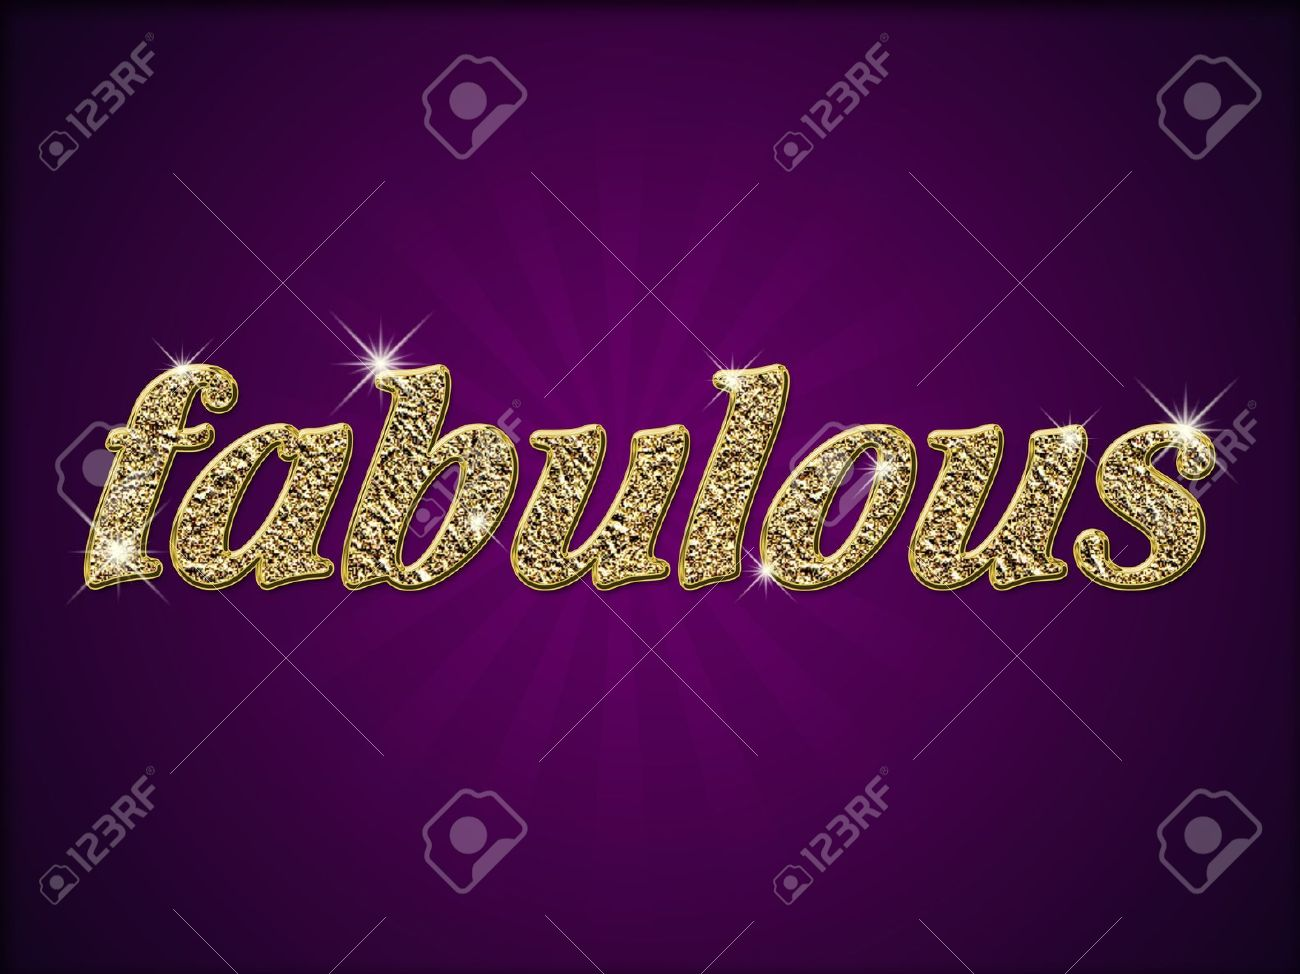 word fabulous in gold style on purple background stock photo